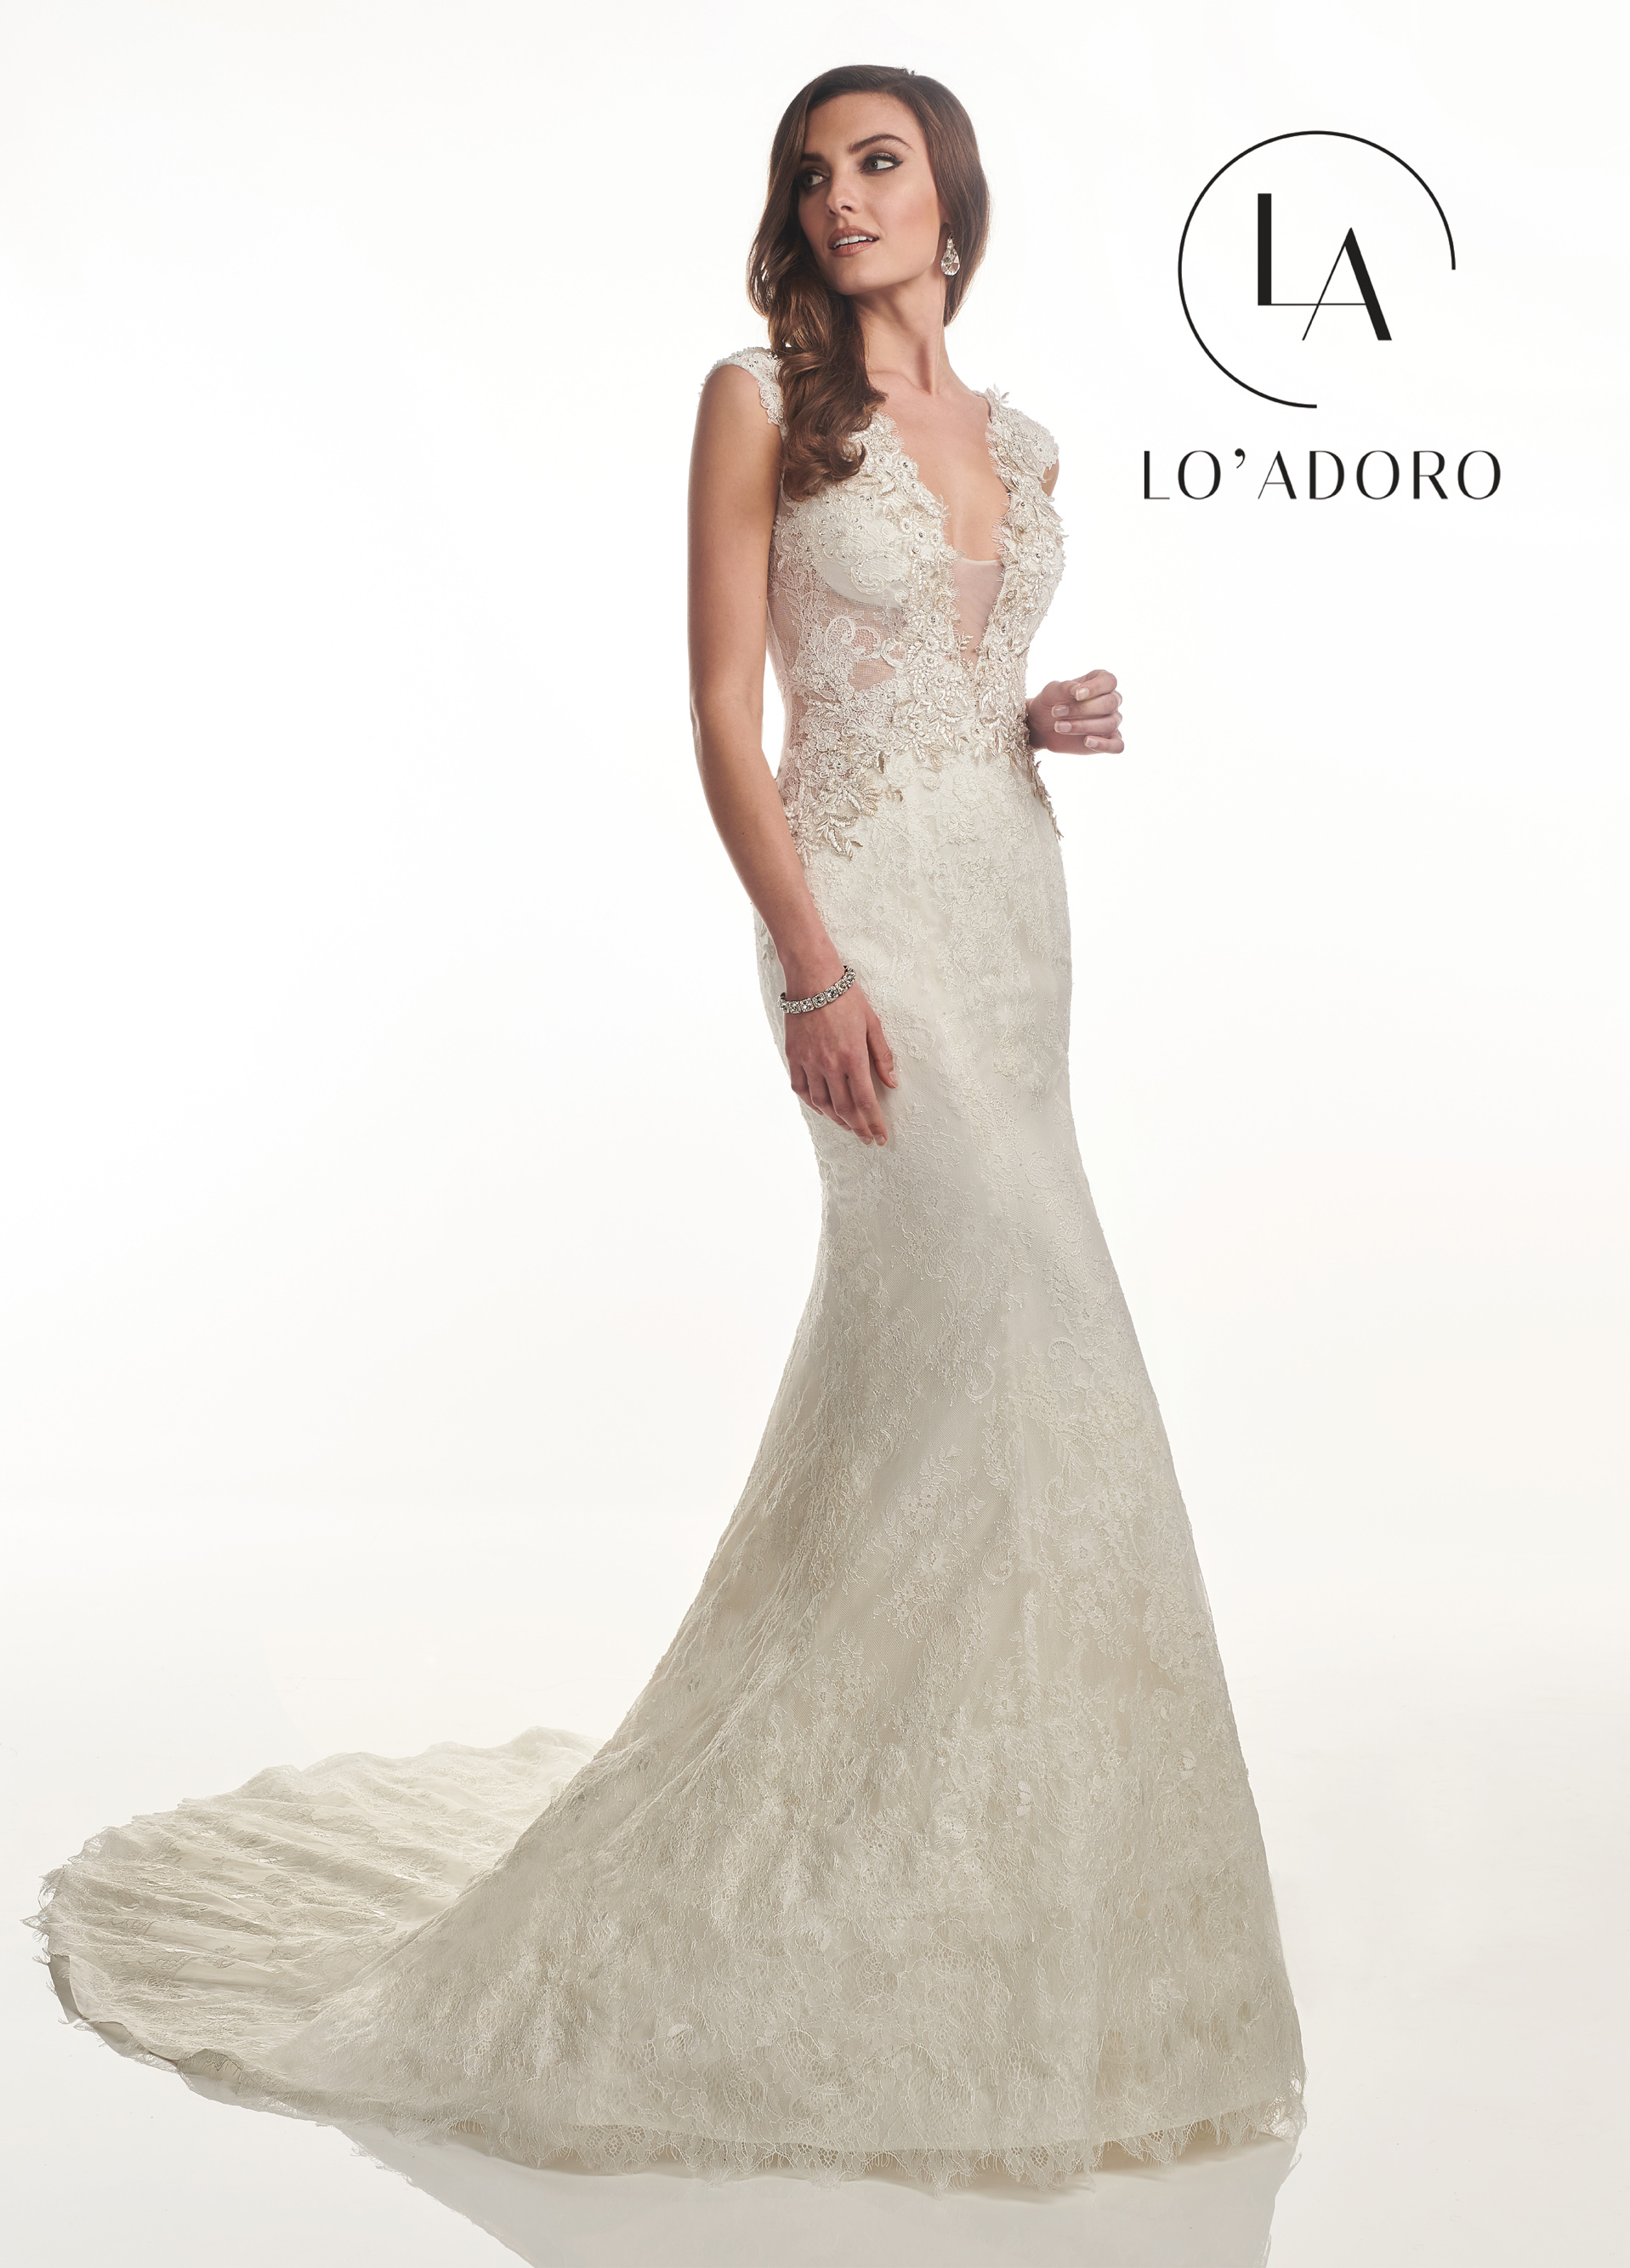 V-Neck Fit & Flare Lo' Adoro Bridal in White Color